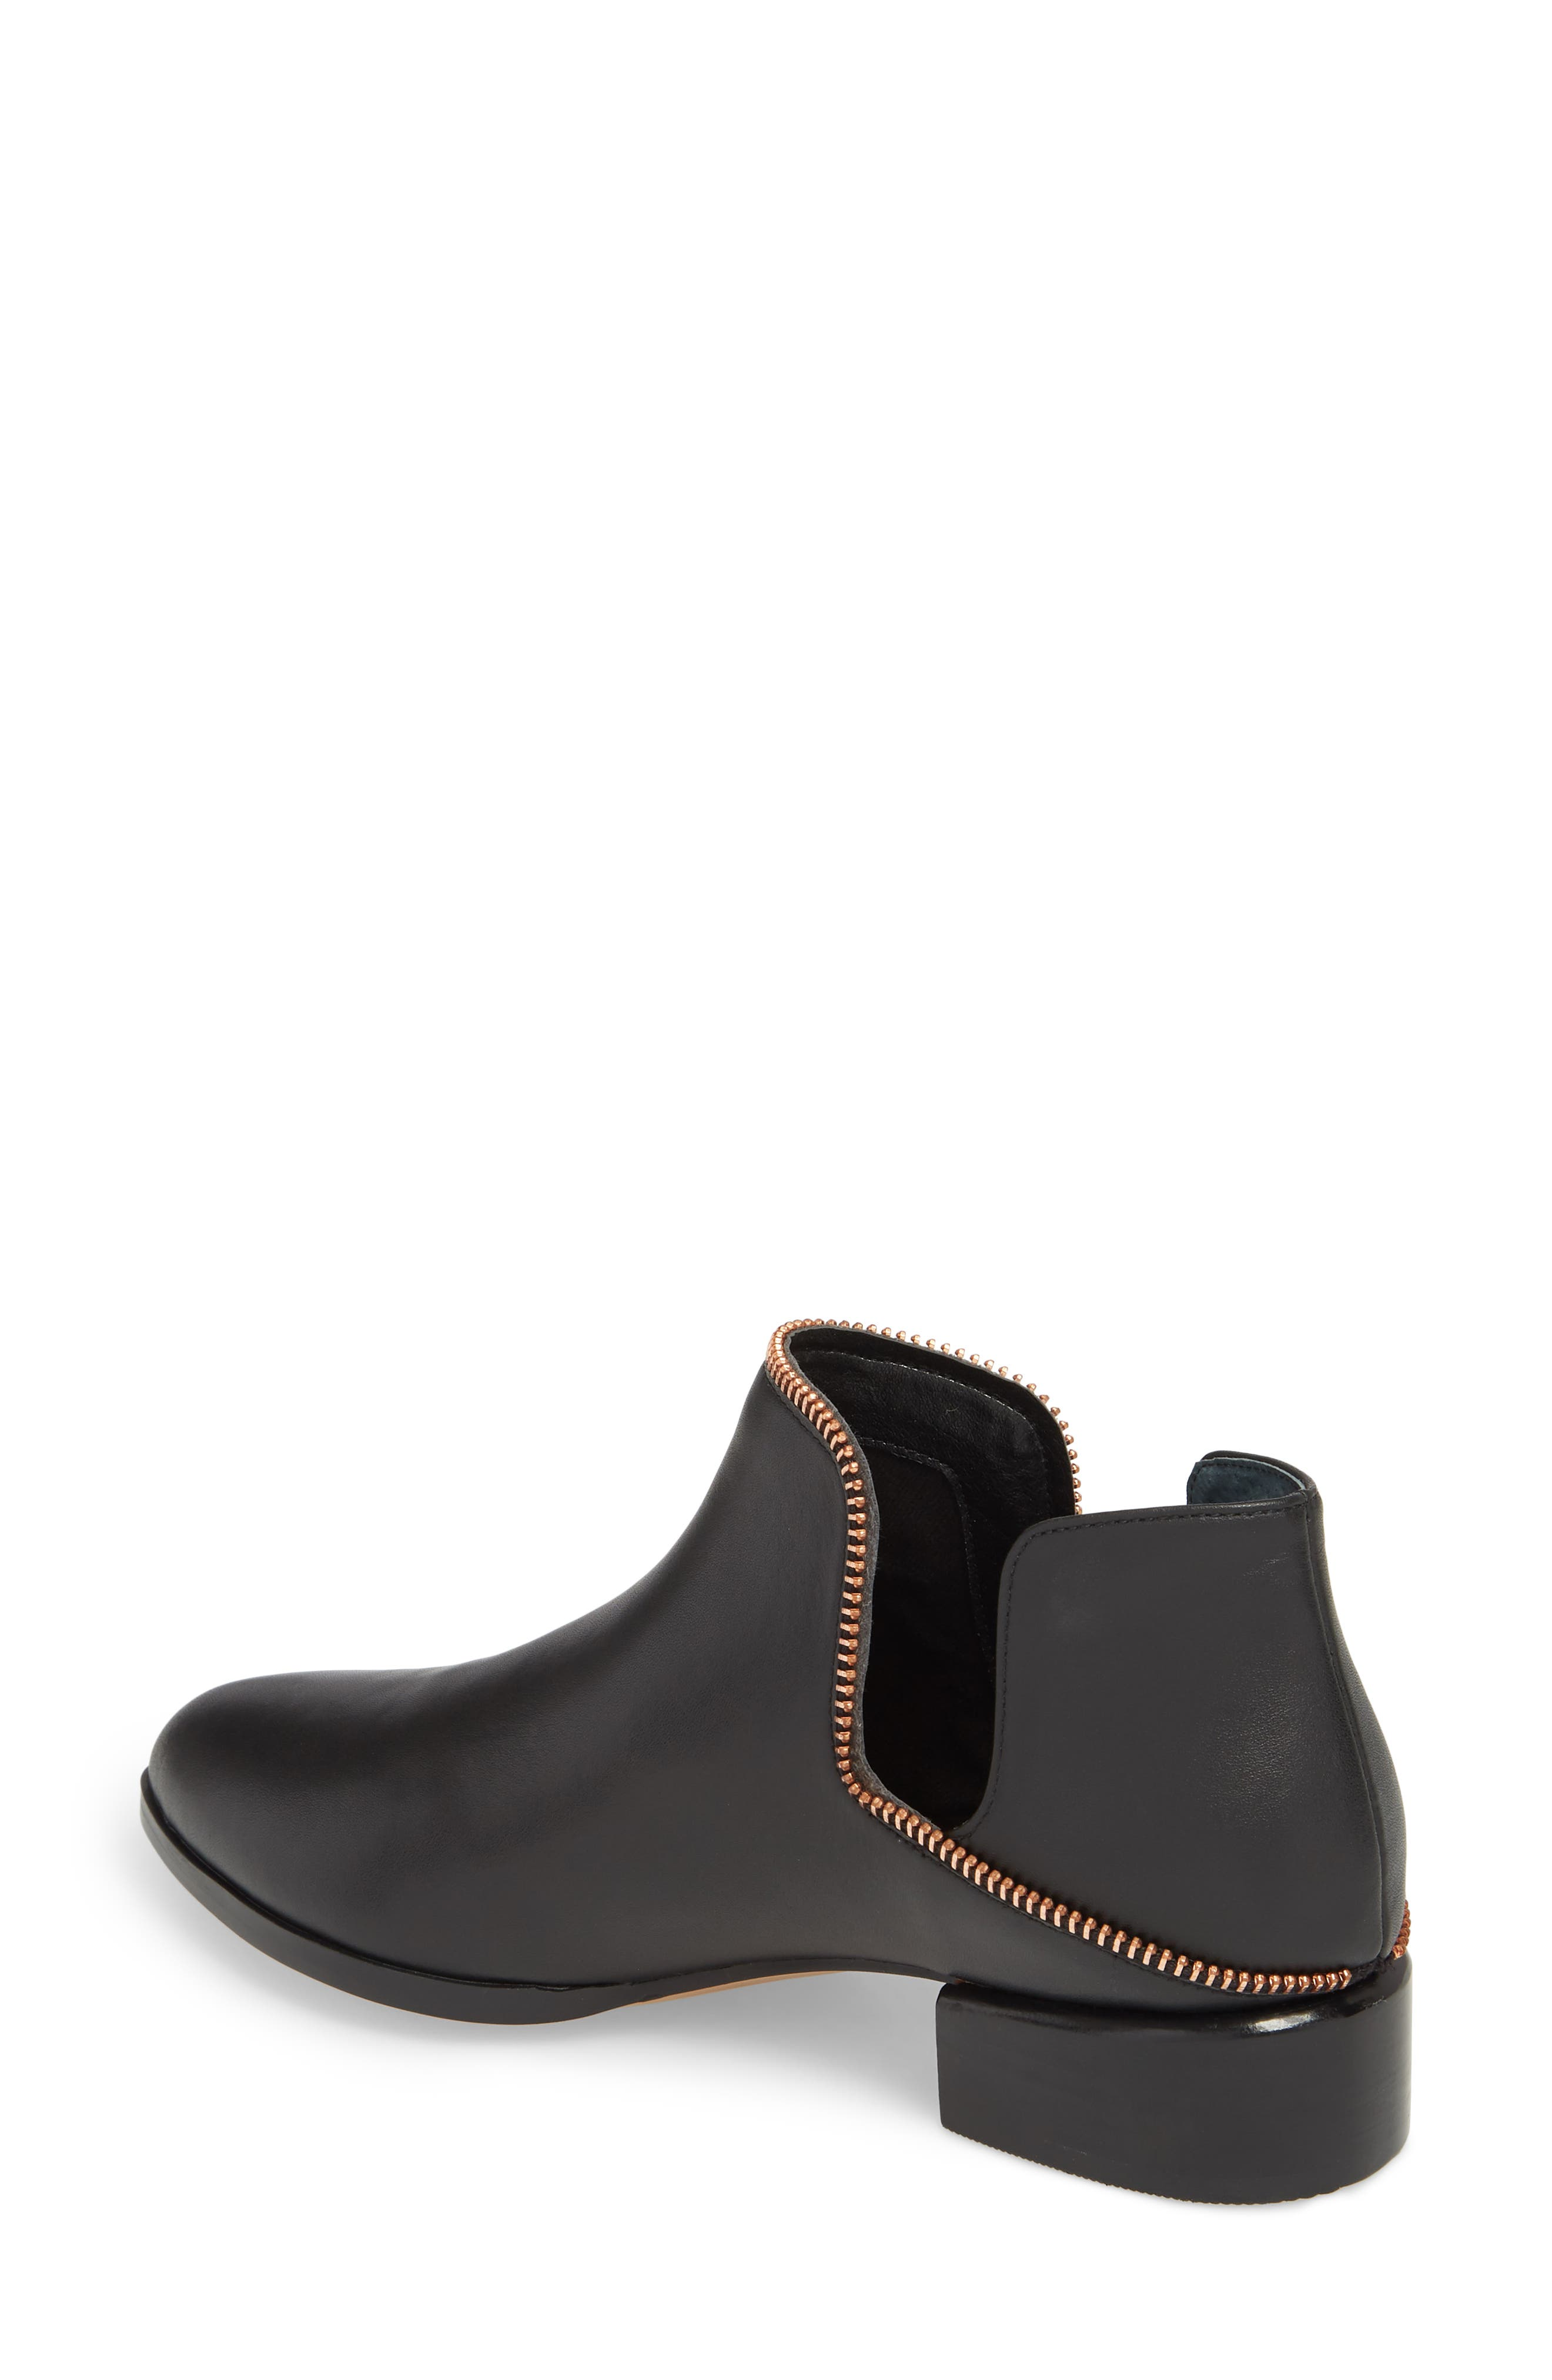 Piper Bootie,                             Alternate thumbnail 2, color,                             Black Leather/ Rosegold